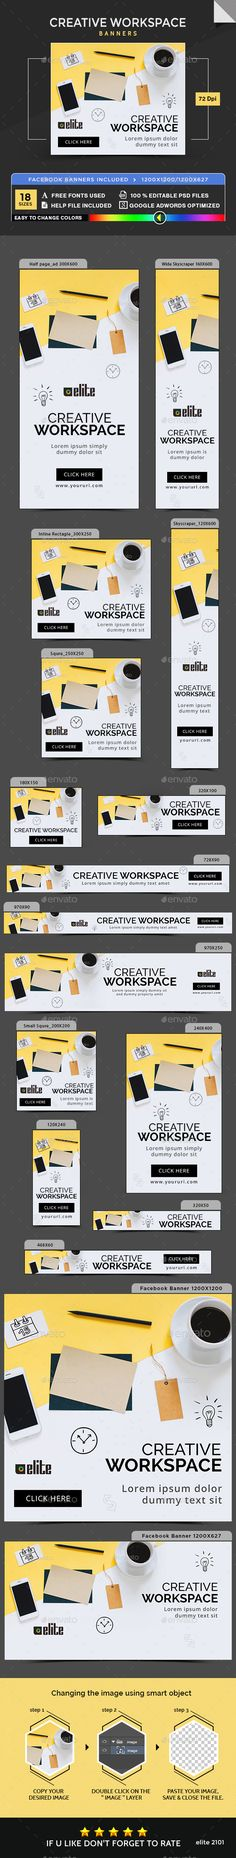 Creative Workspace Banners - Banners & Ads Web Elements Download here : https://graphicriver.net/item/creative-workspace-banners/19298178?s_rank=26&ref=Al-fatih